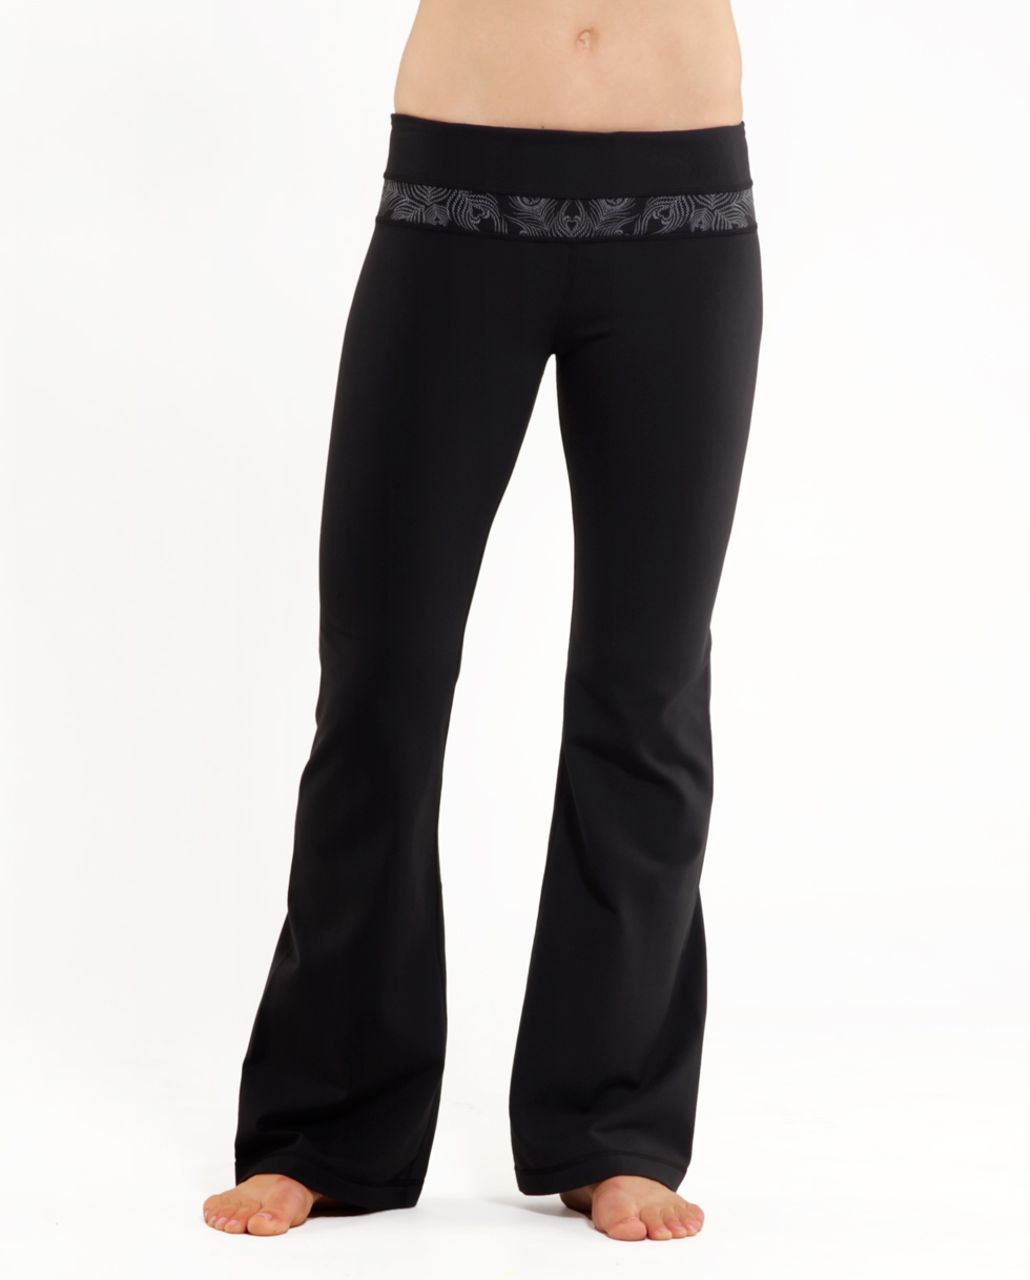 Lululemon Groove Pant (Tall) - Black /  Silver Peacock Lace Reflective /  Black Space Dye